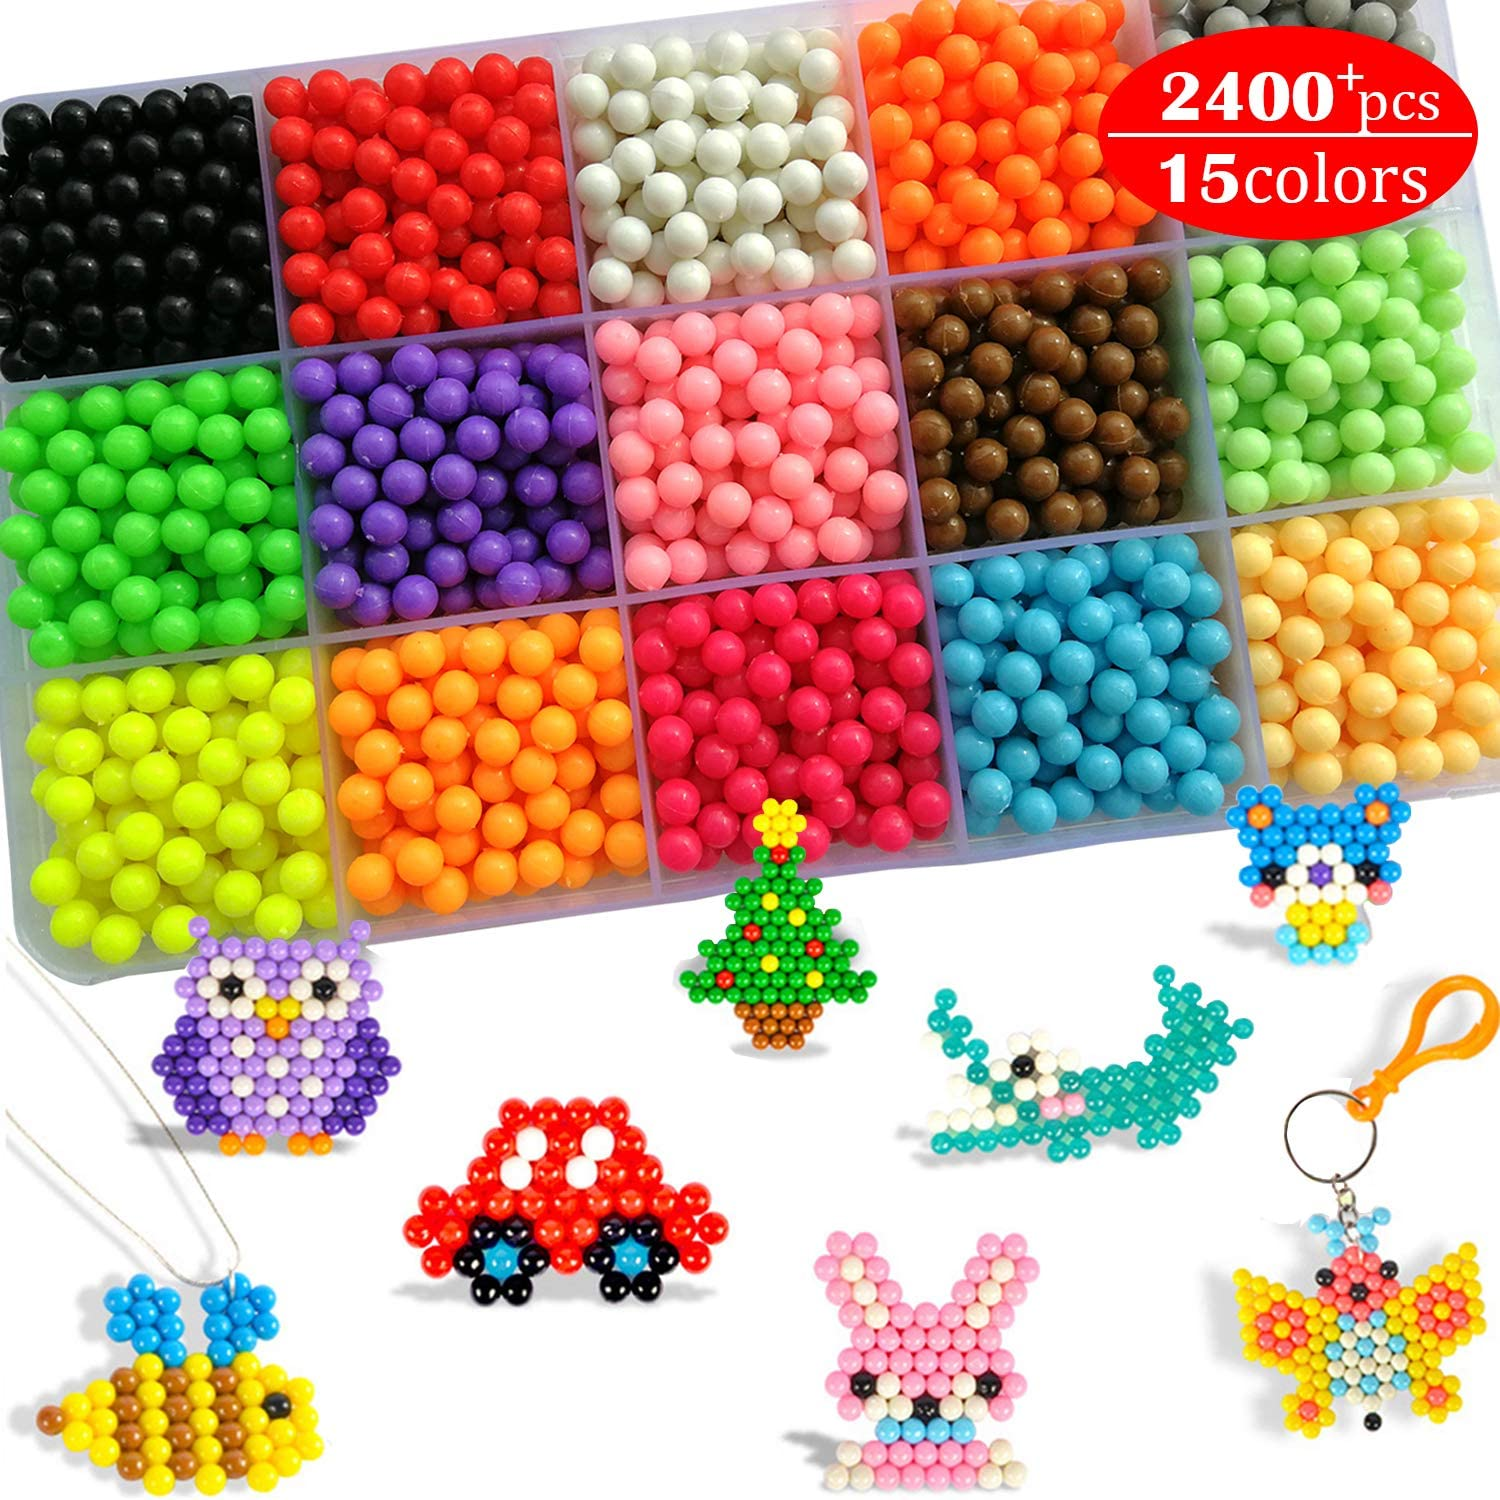 Fuse Water Beads Kit for Kids Non Toxic Art Craft Toys 15 Colors 2400 Beads